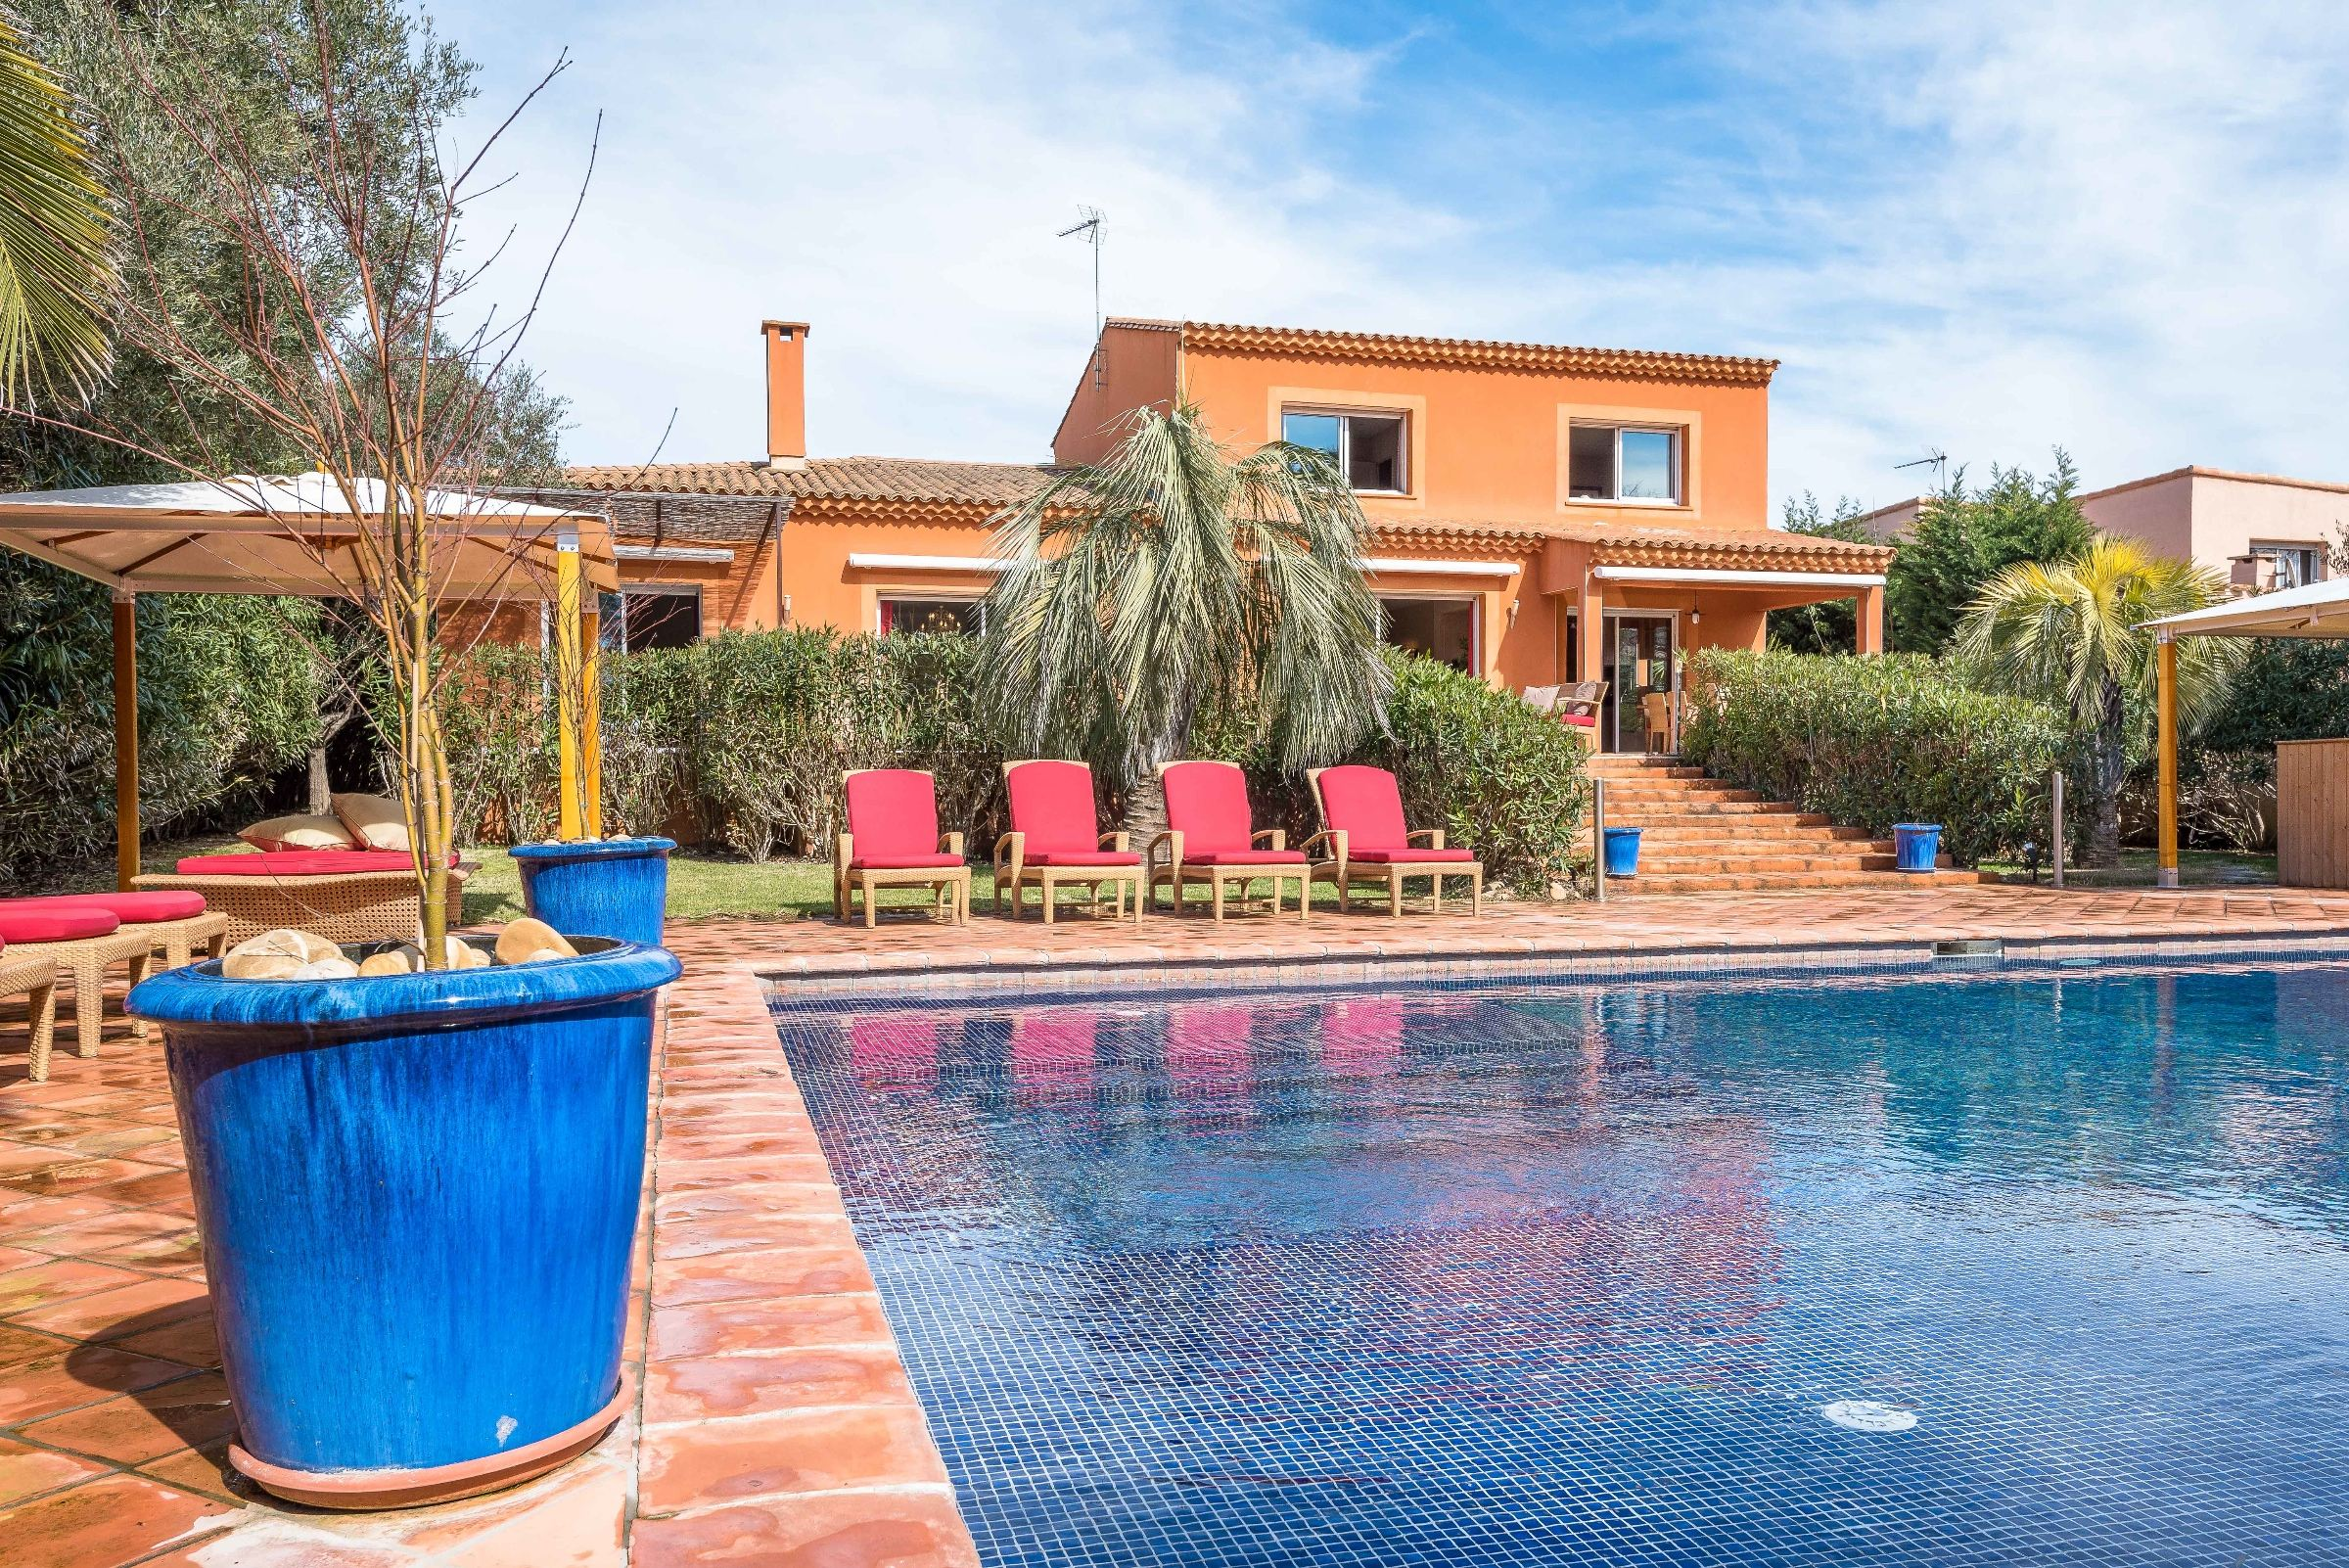 Property For Sale at CHARMING VILLA NEAR THE SEA